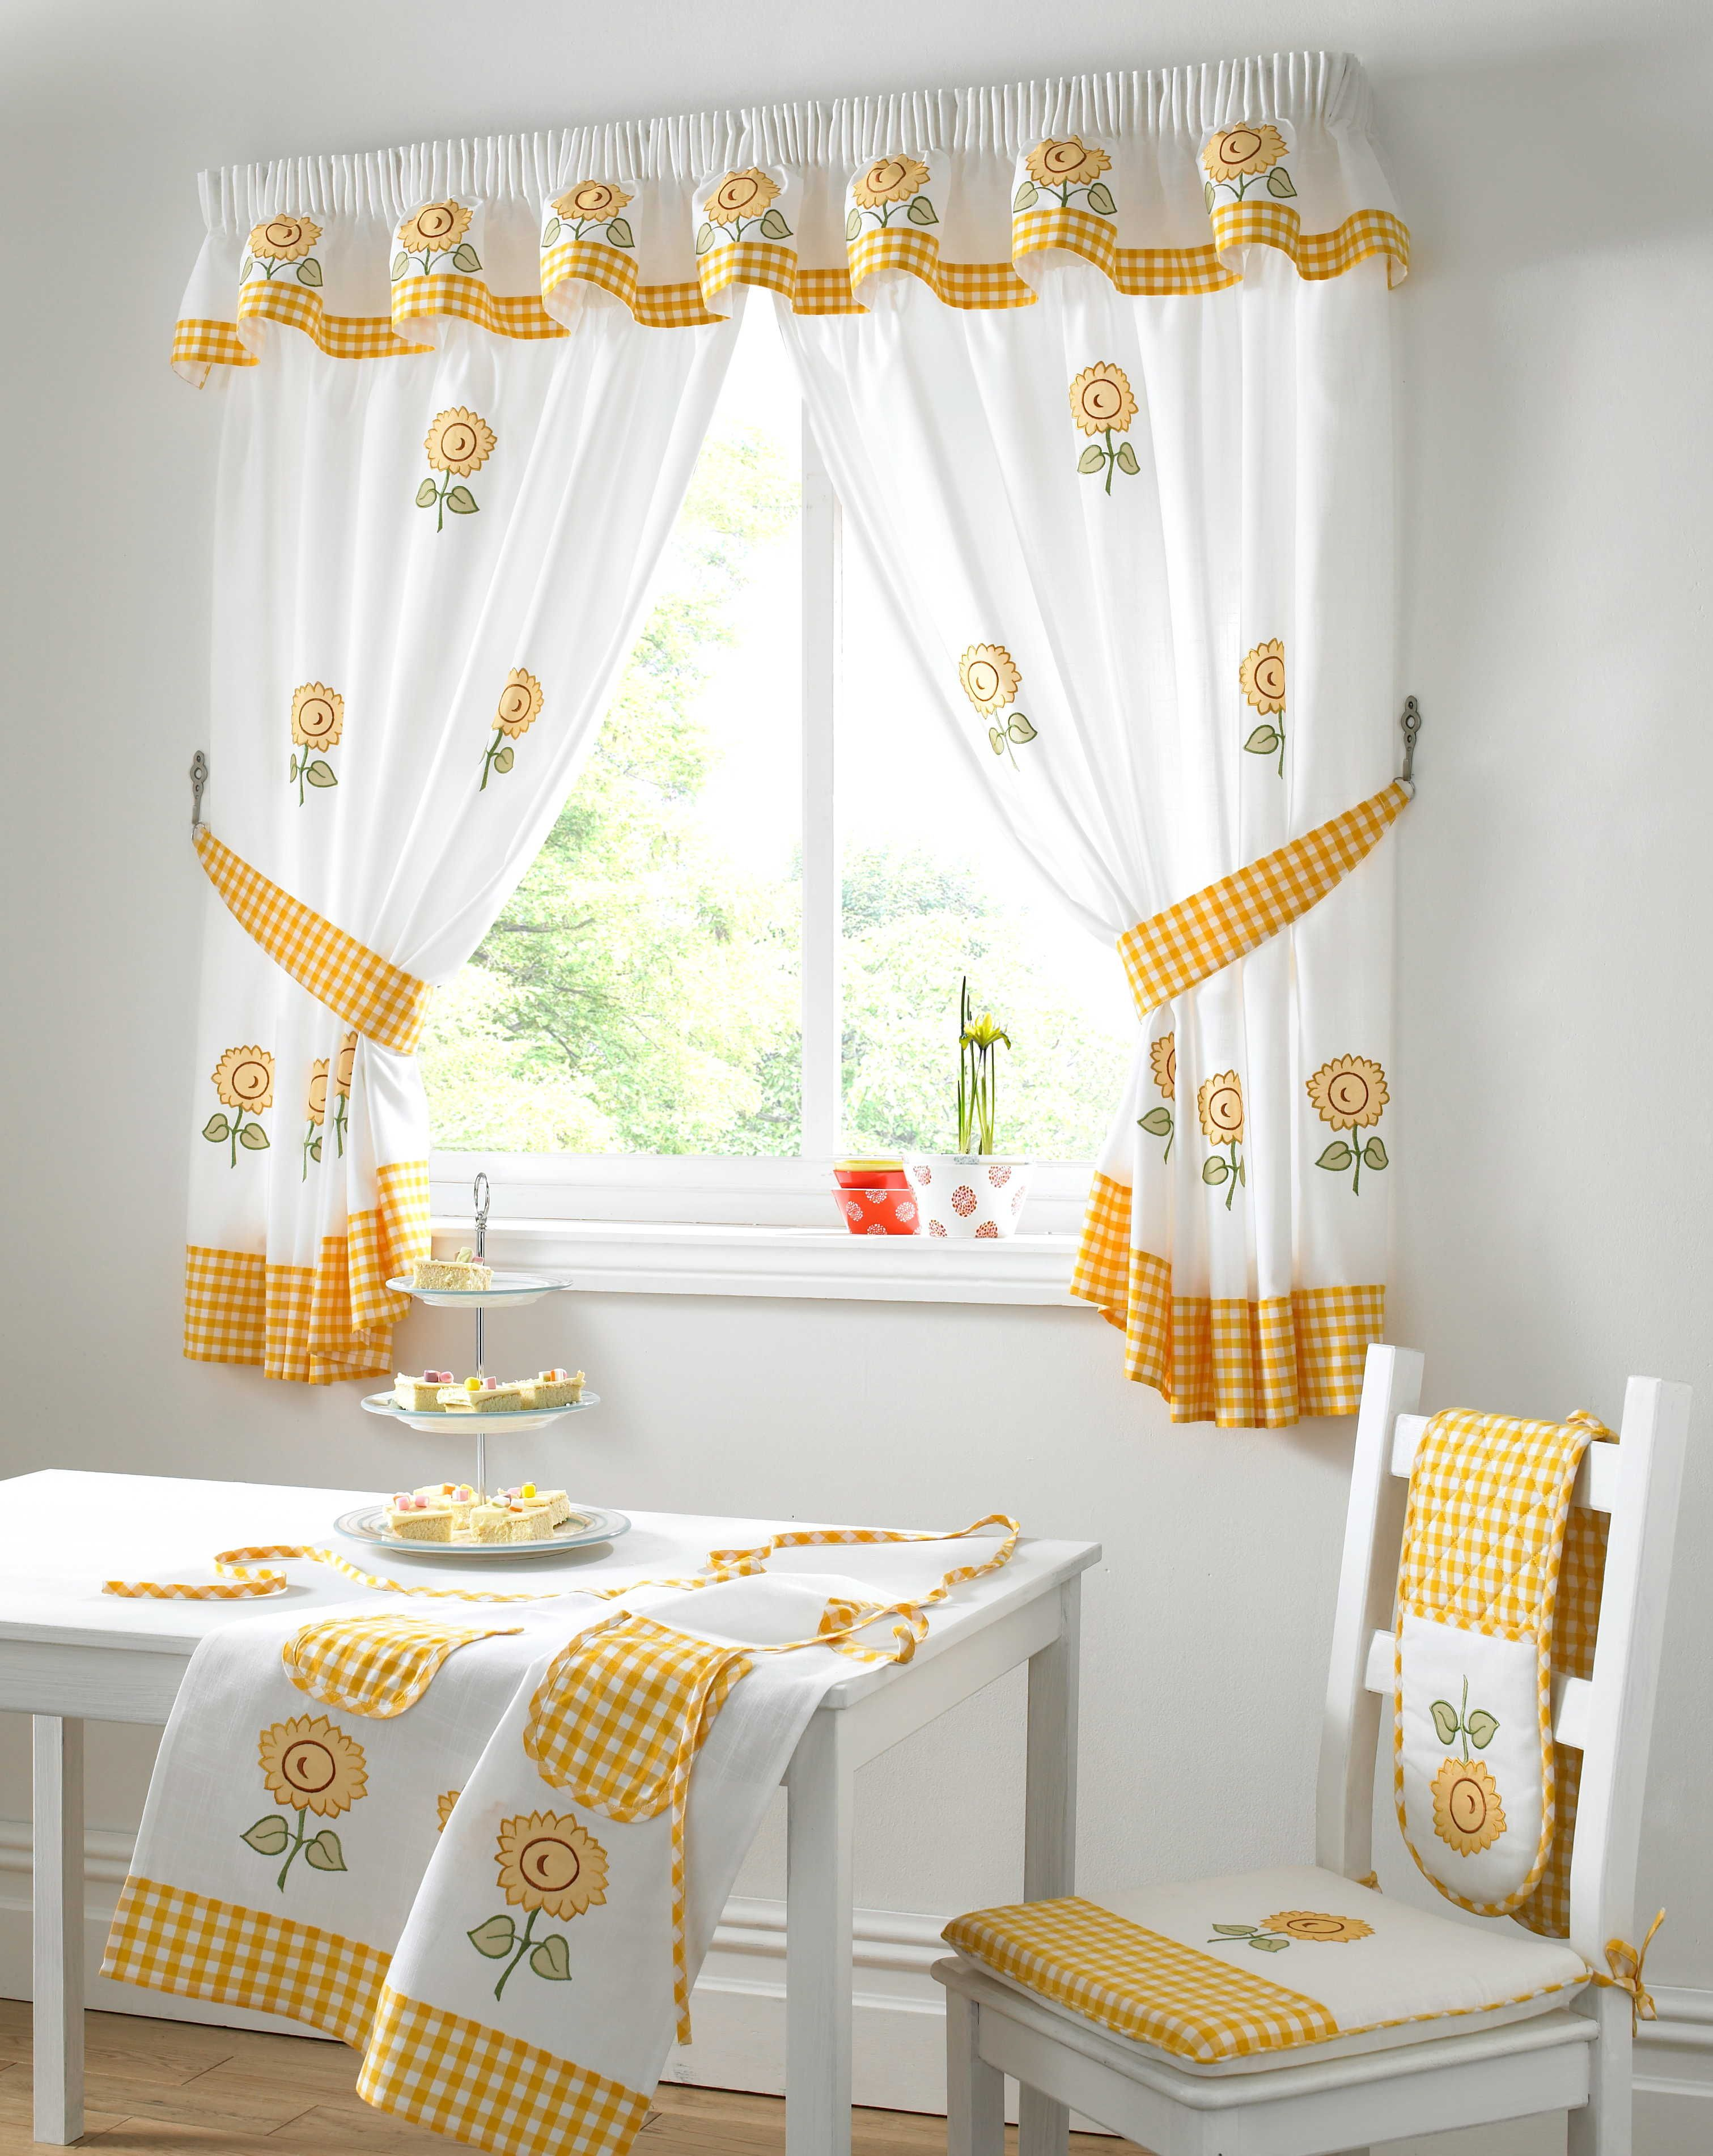 Different style cafe curtain designs click image to enlarge